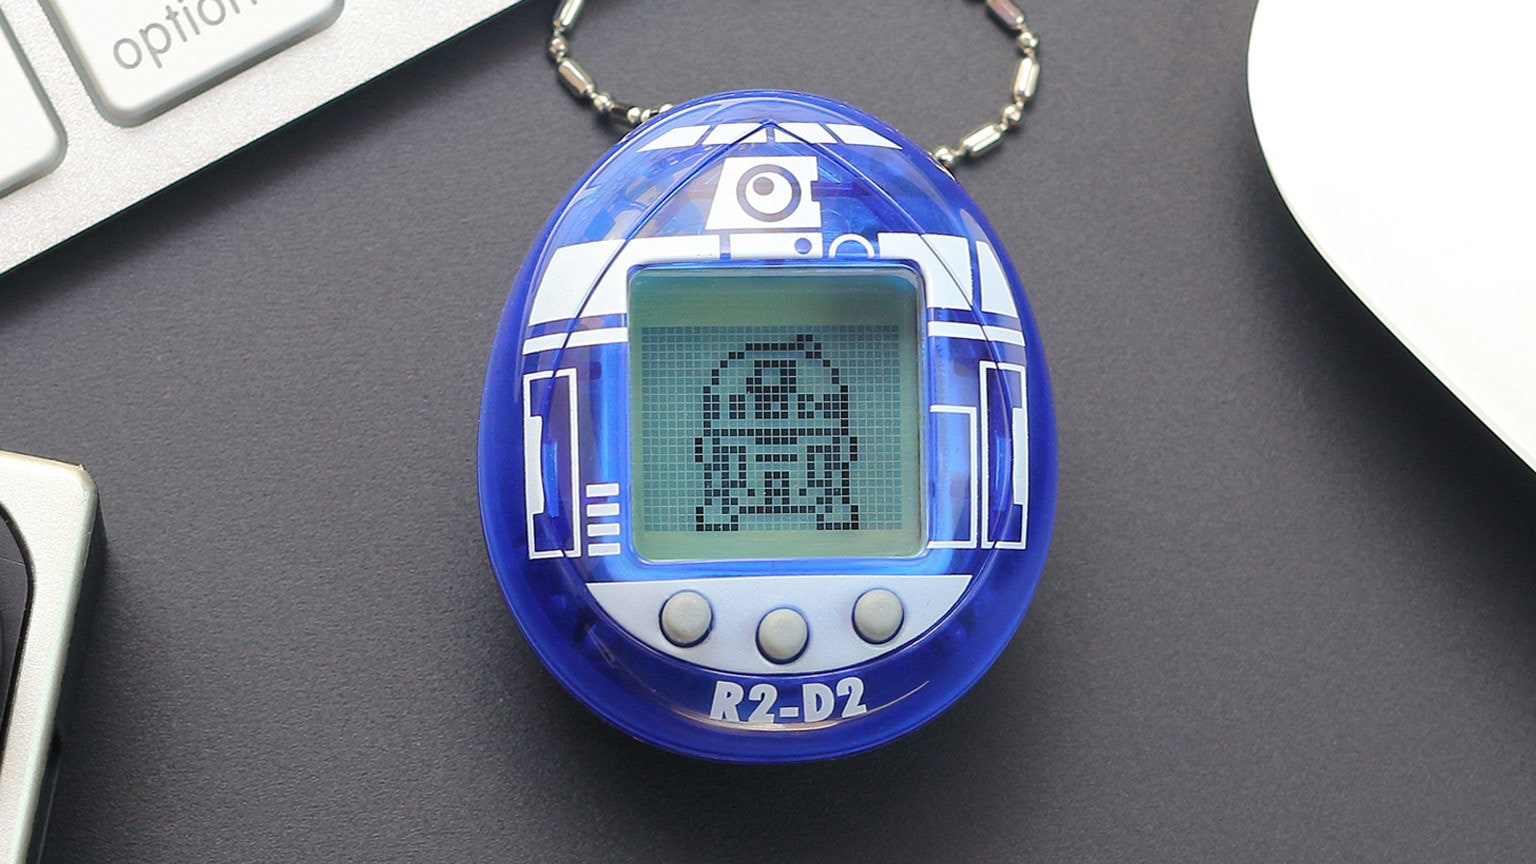 The New R2-D2 Tamagotchi is Here to Be Your Droid Buddy – Exclusive